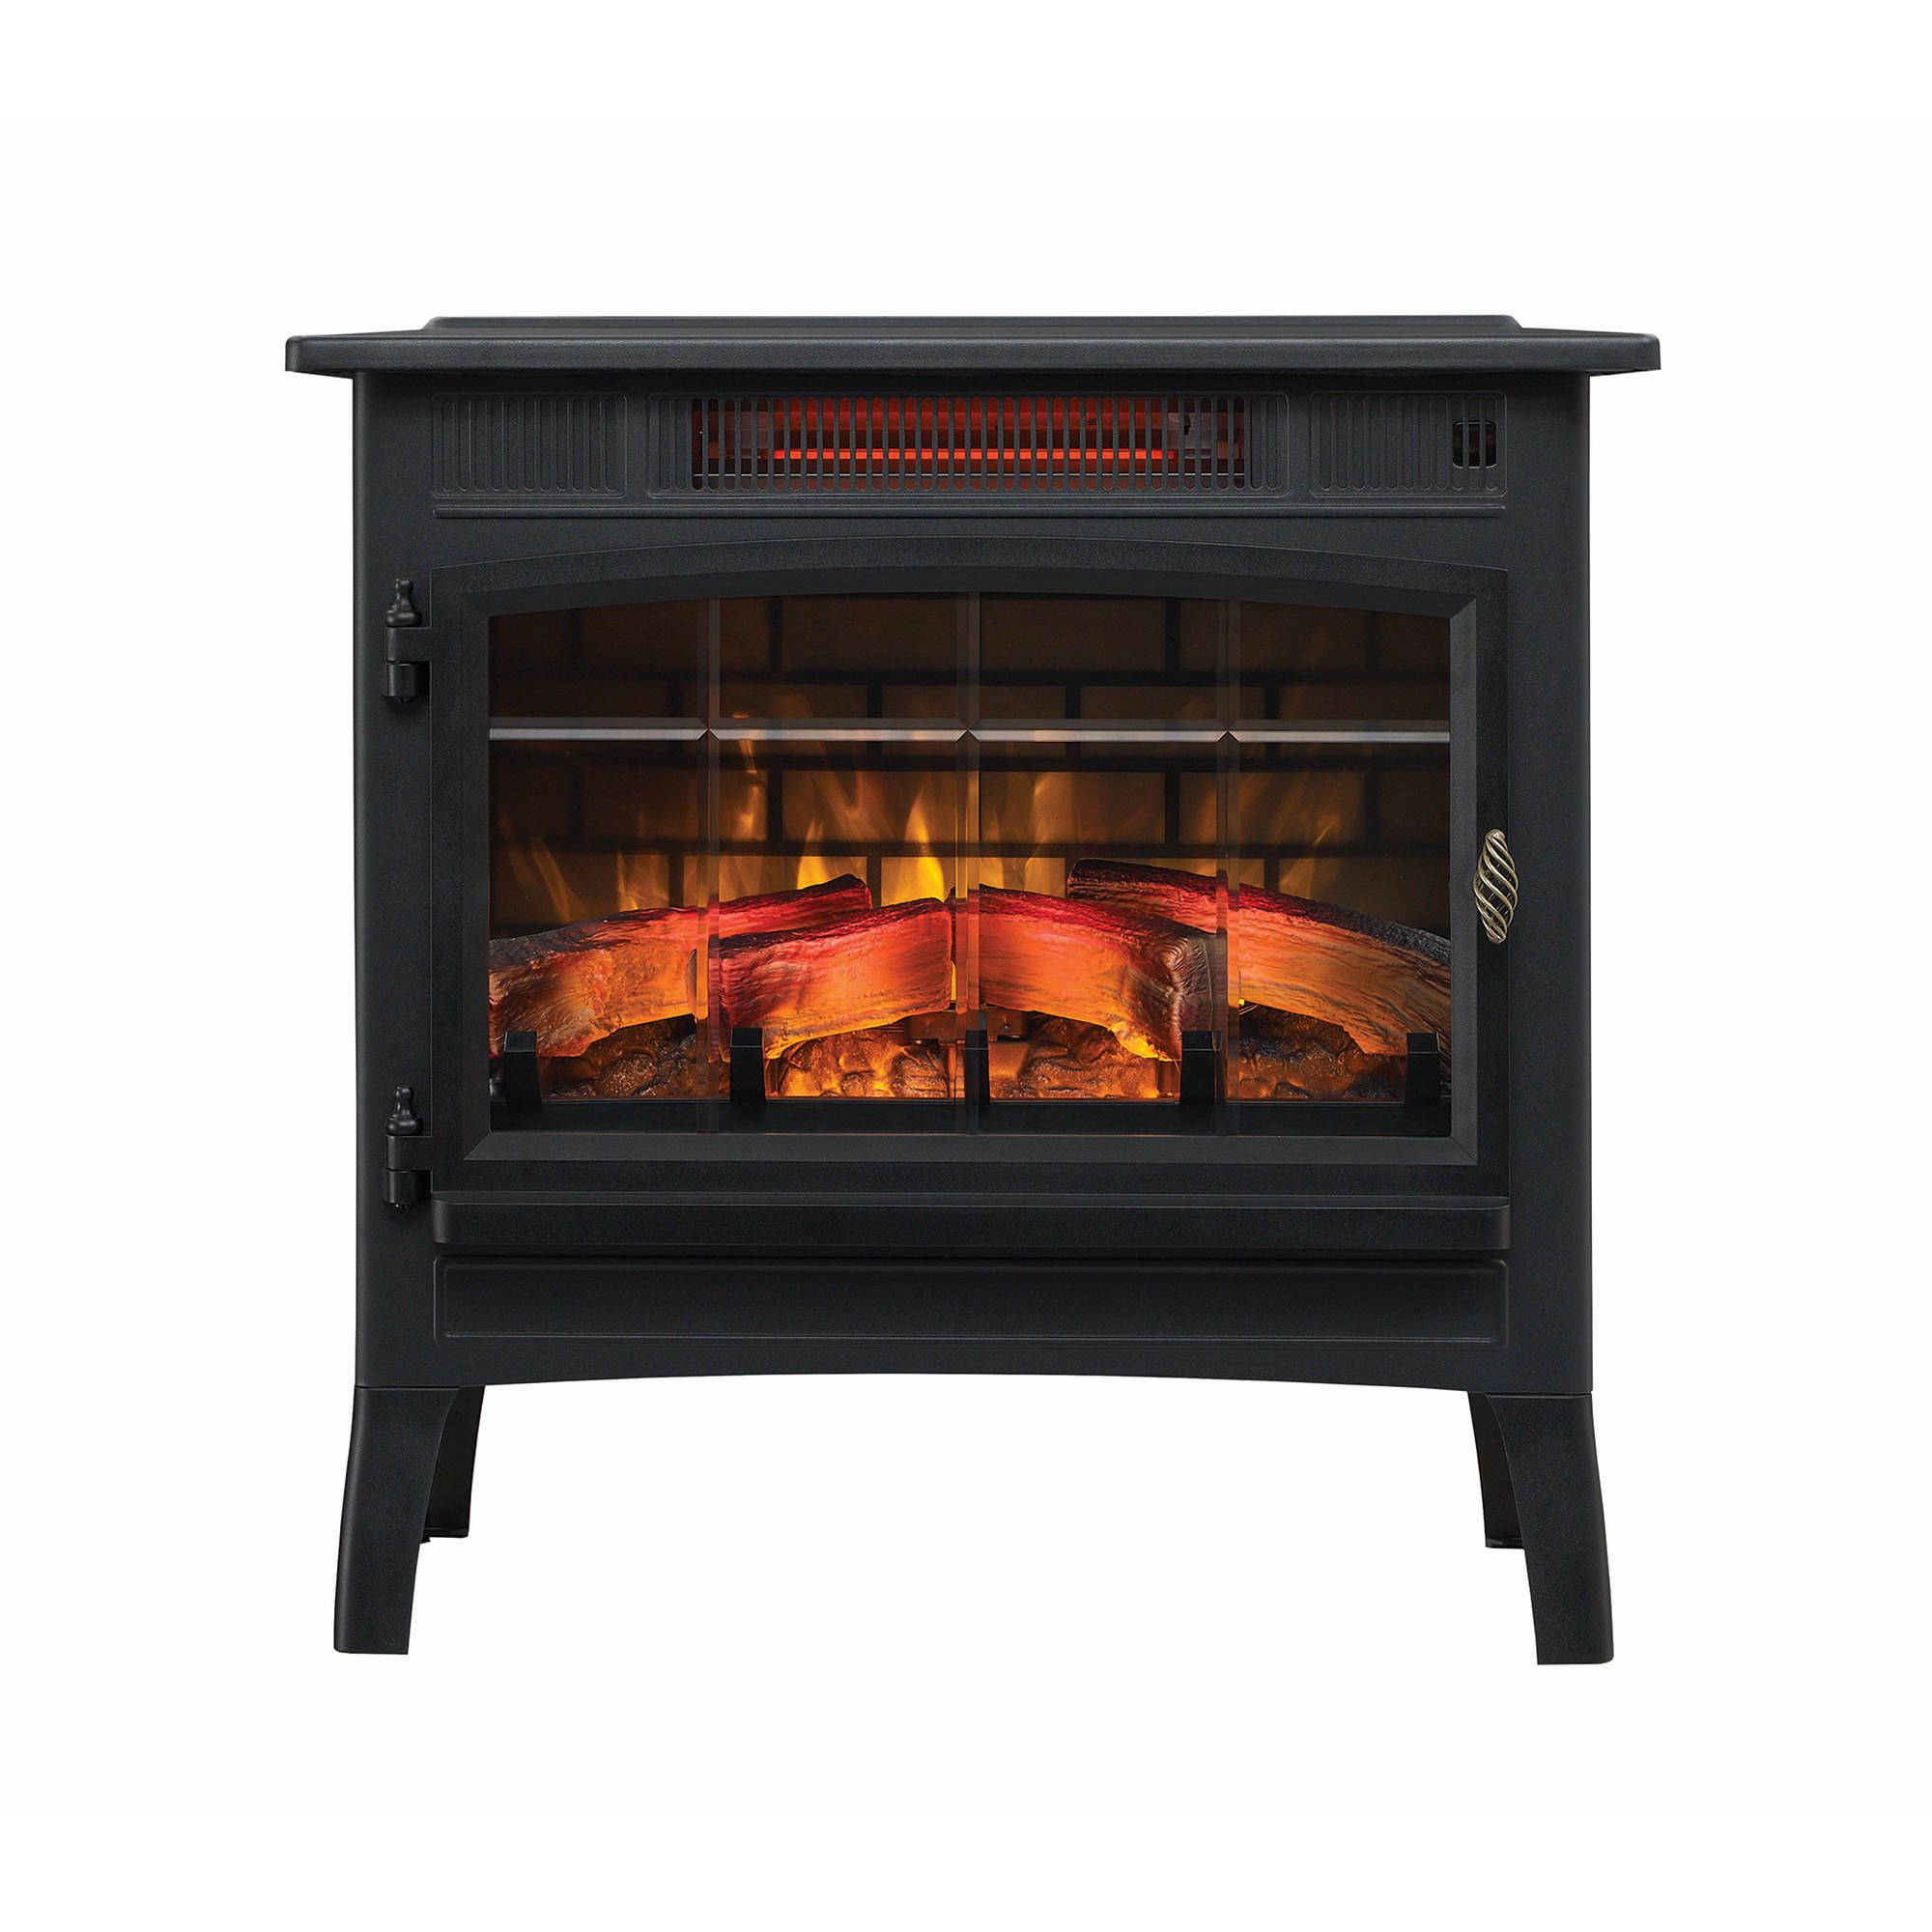 Duraflame 5 200 Btu Infrared Quartz Stove With 3d Flame Effect